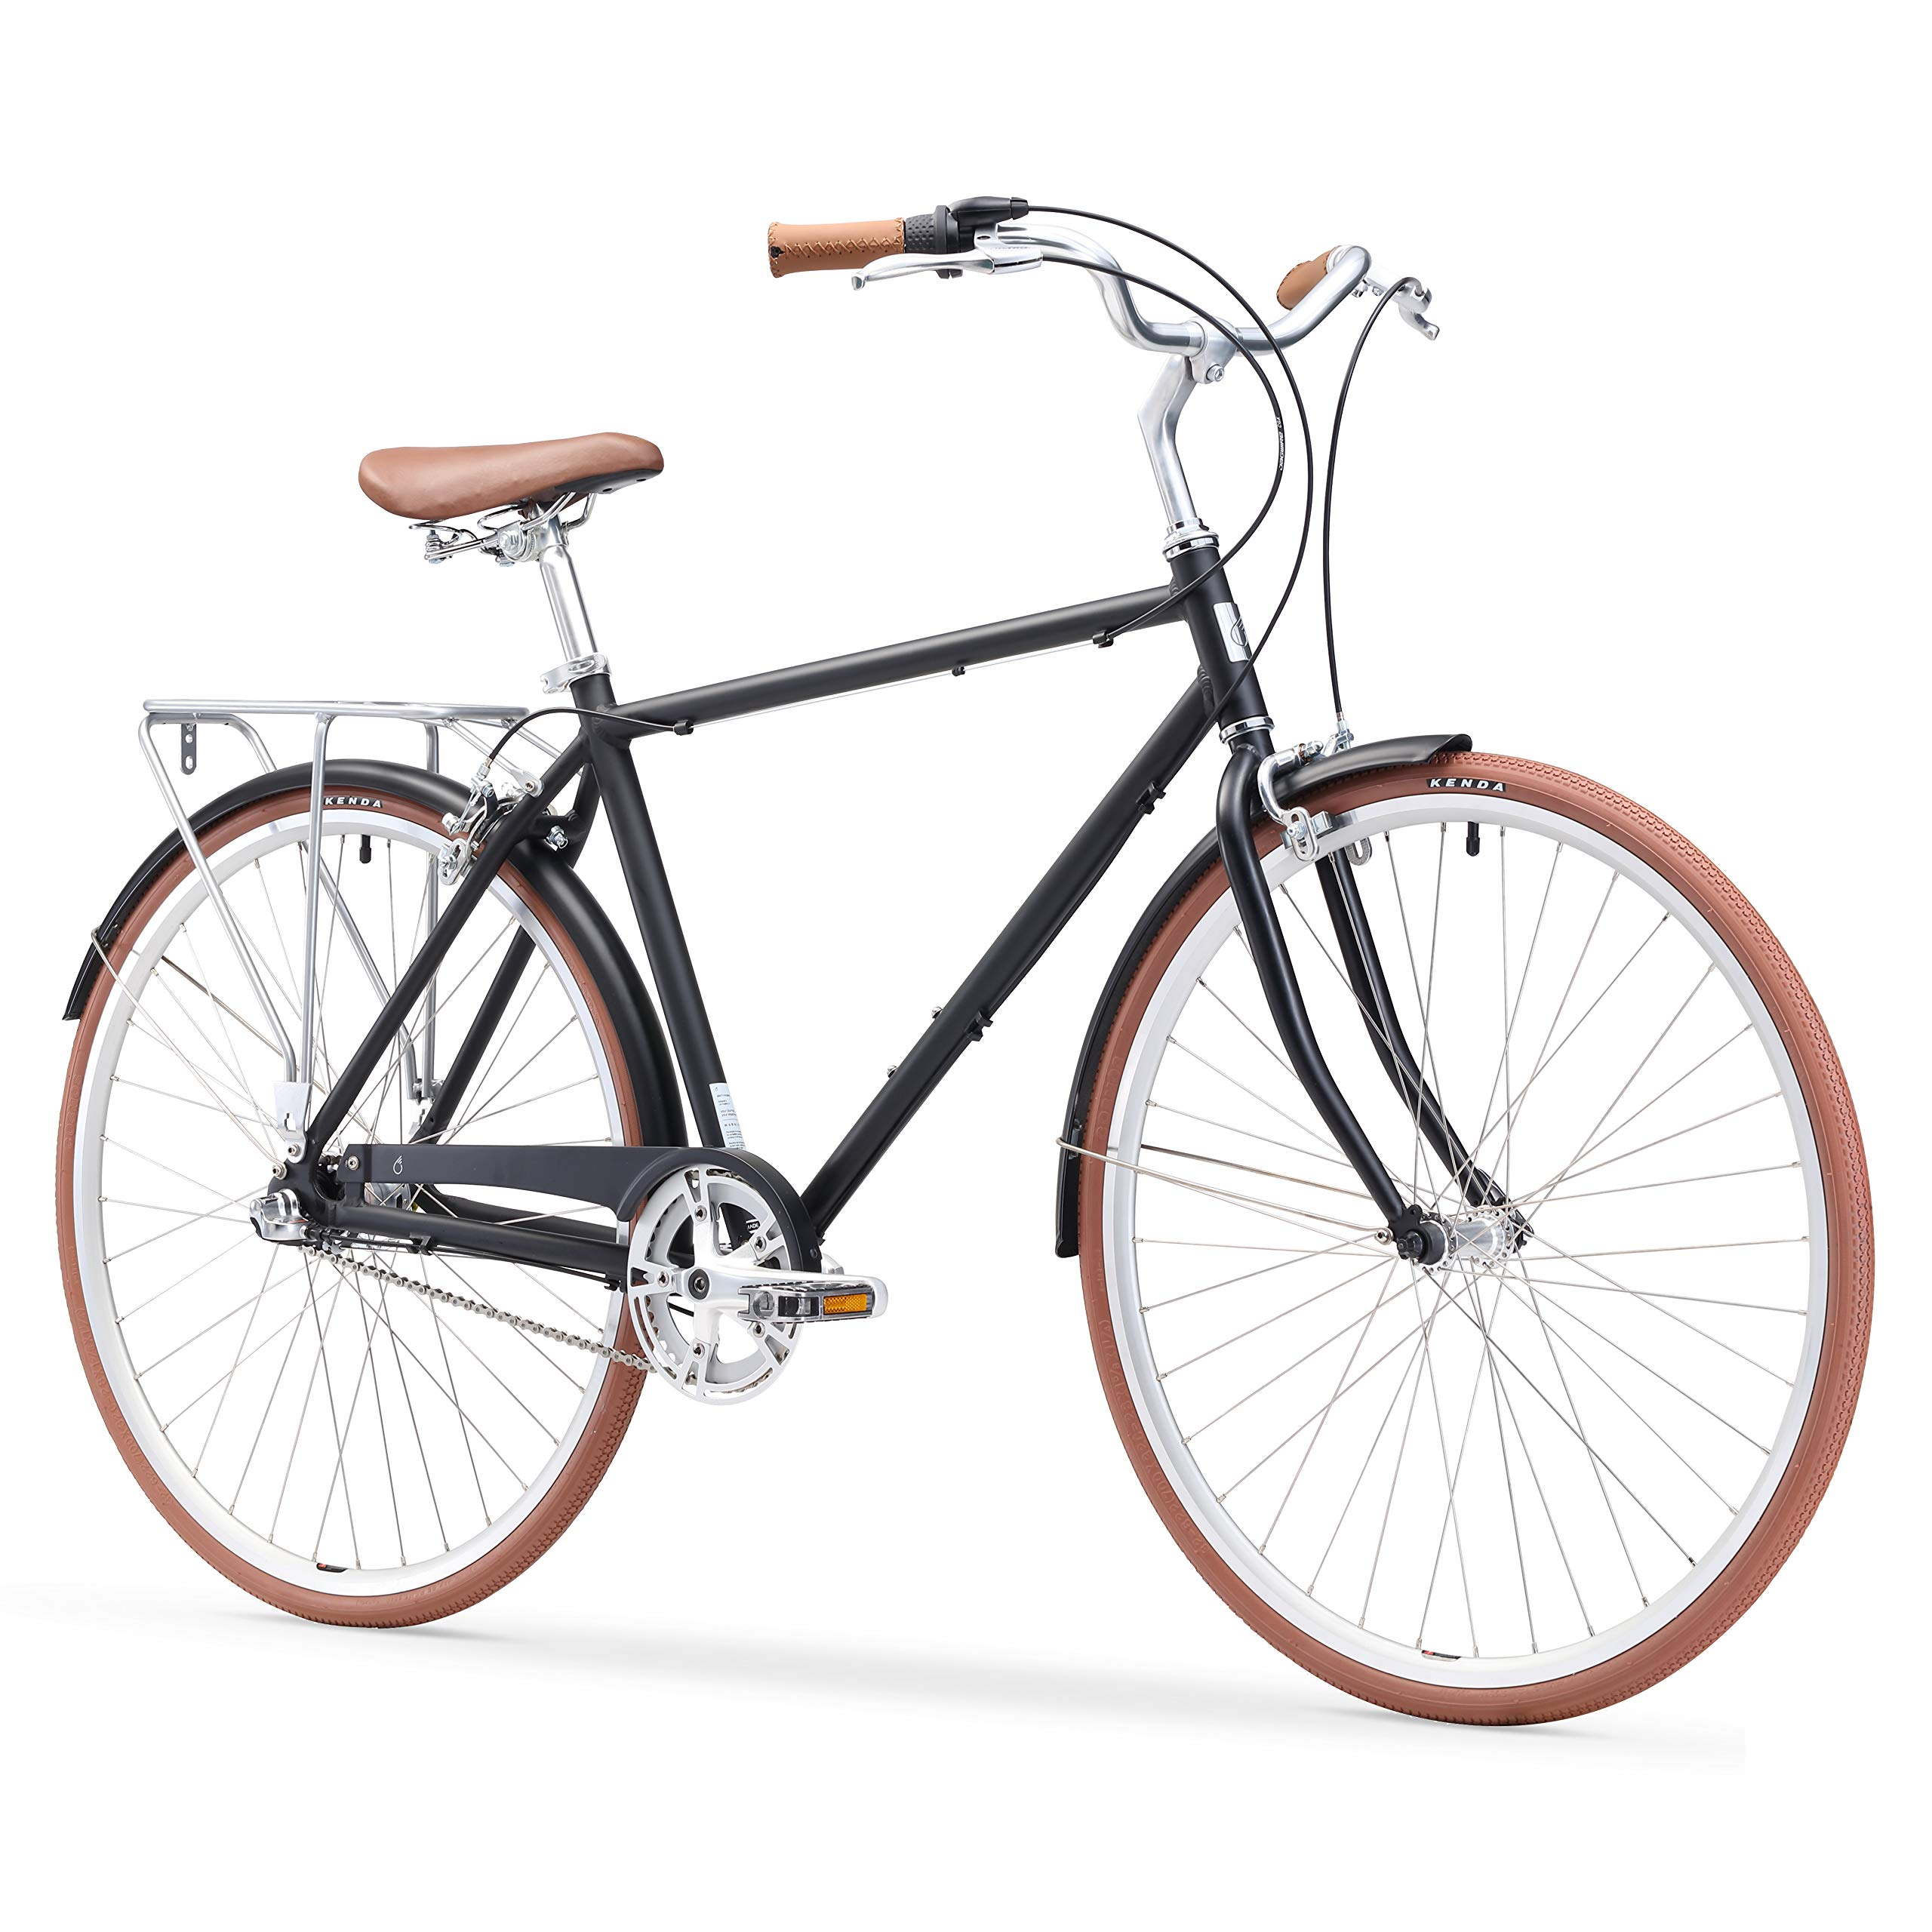 6599e6a7297 sixthreezero Ride in The Park Men's Touring City Road Bicycle with Rear  Rack product image